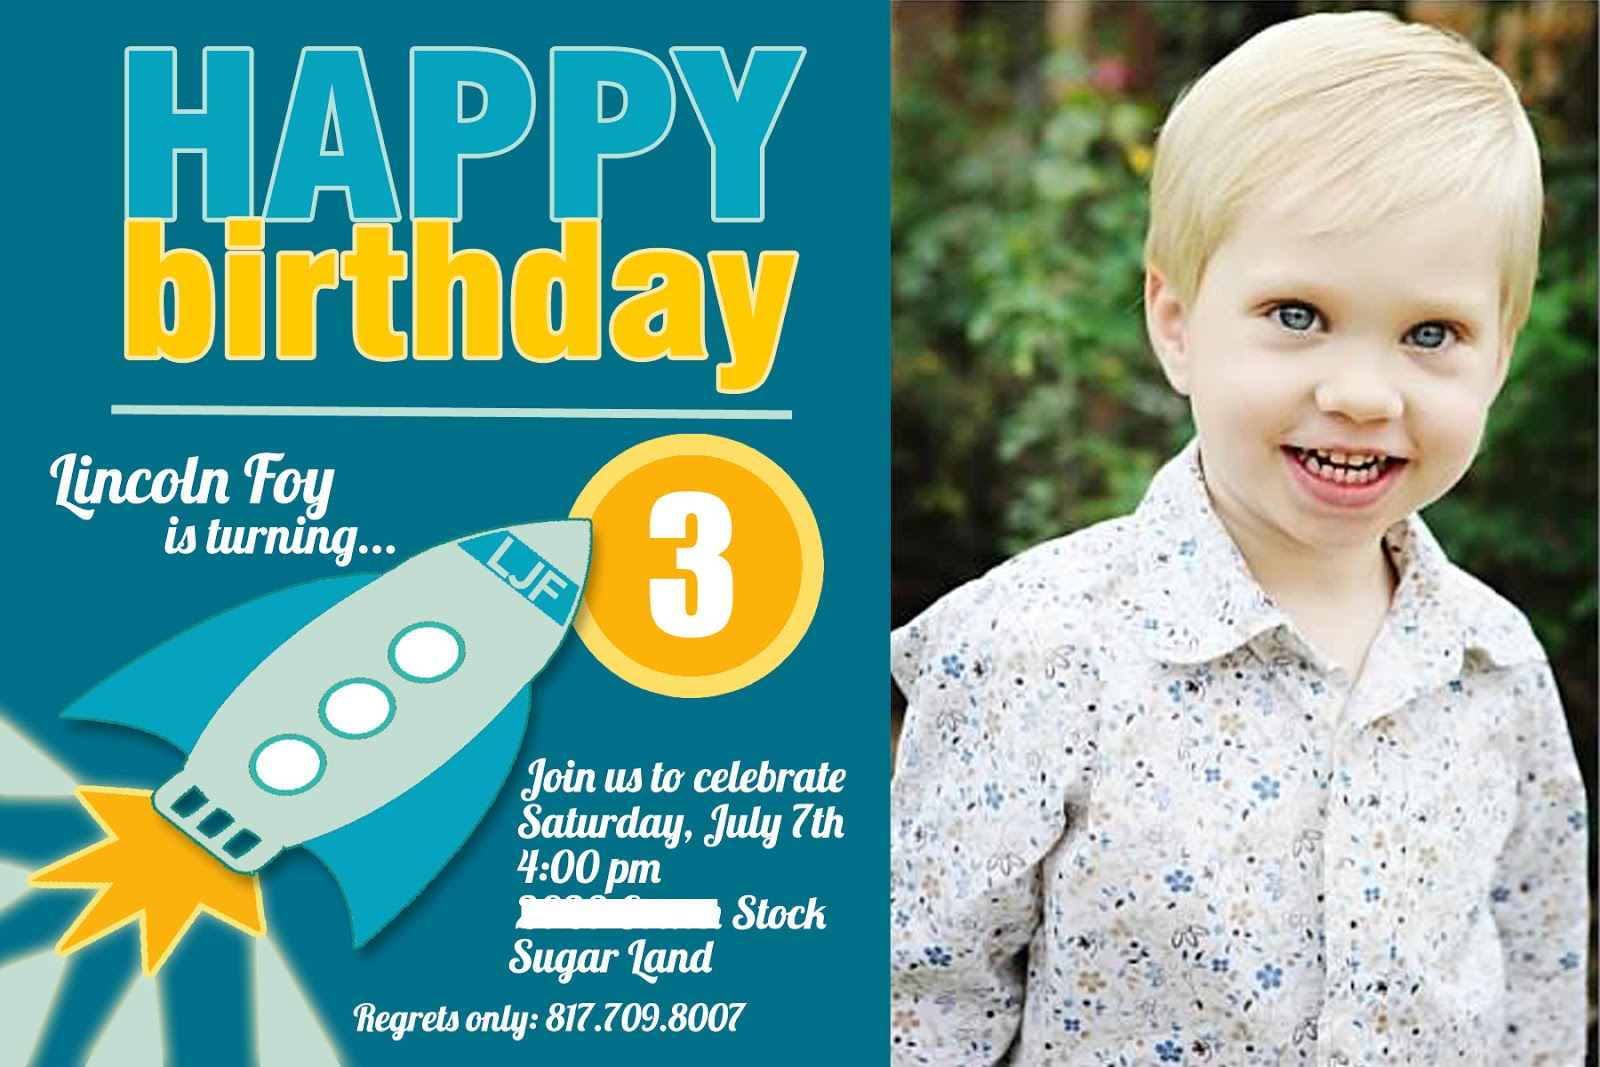 4th birthday invitation wording boy ; 3-year-old-birthday-party-invitation-wording-divine-Party-invitations-as-your-best-friendship-appreciation-to-your-best-friends-13